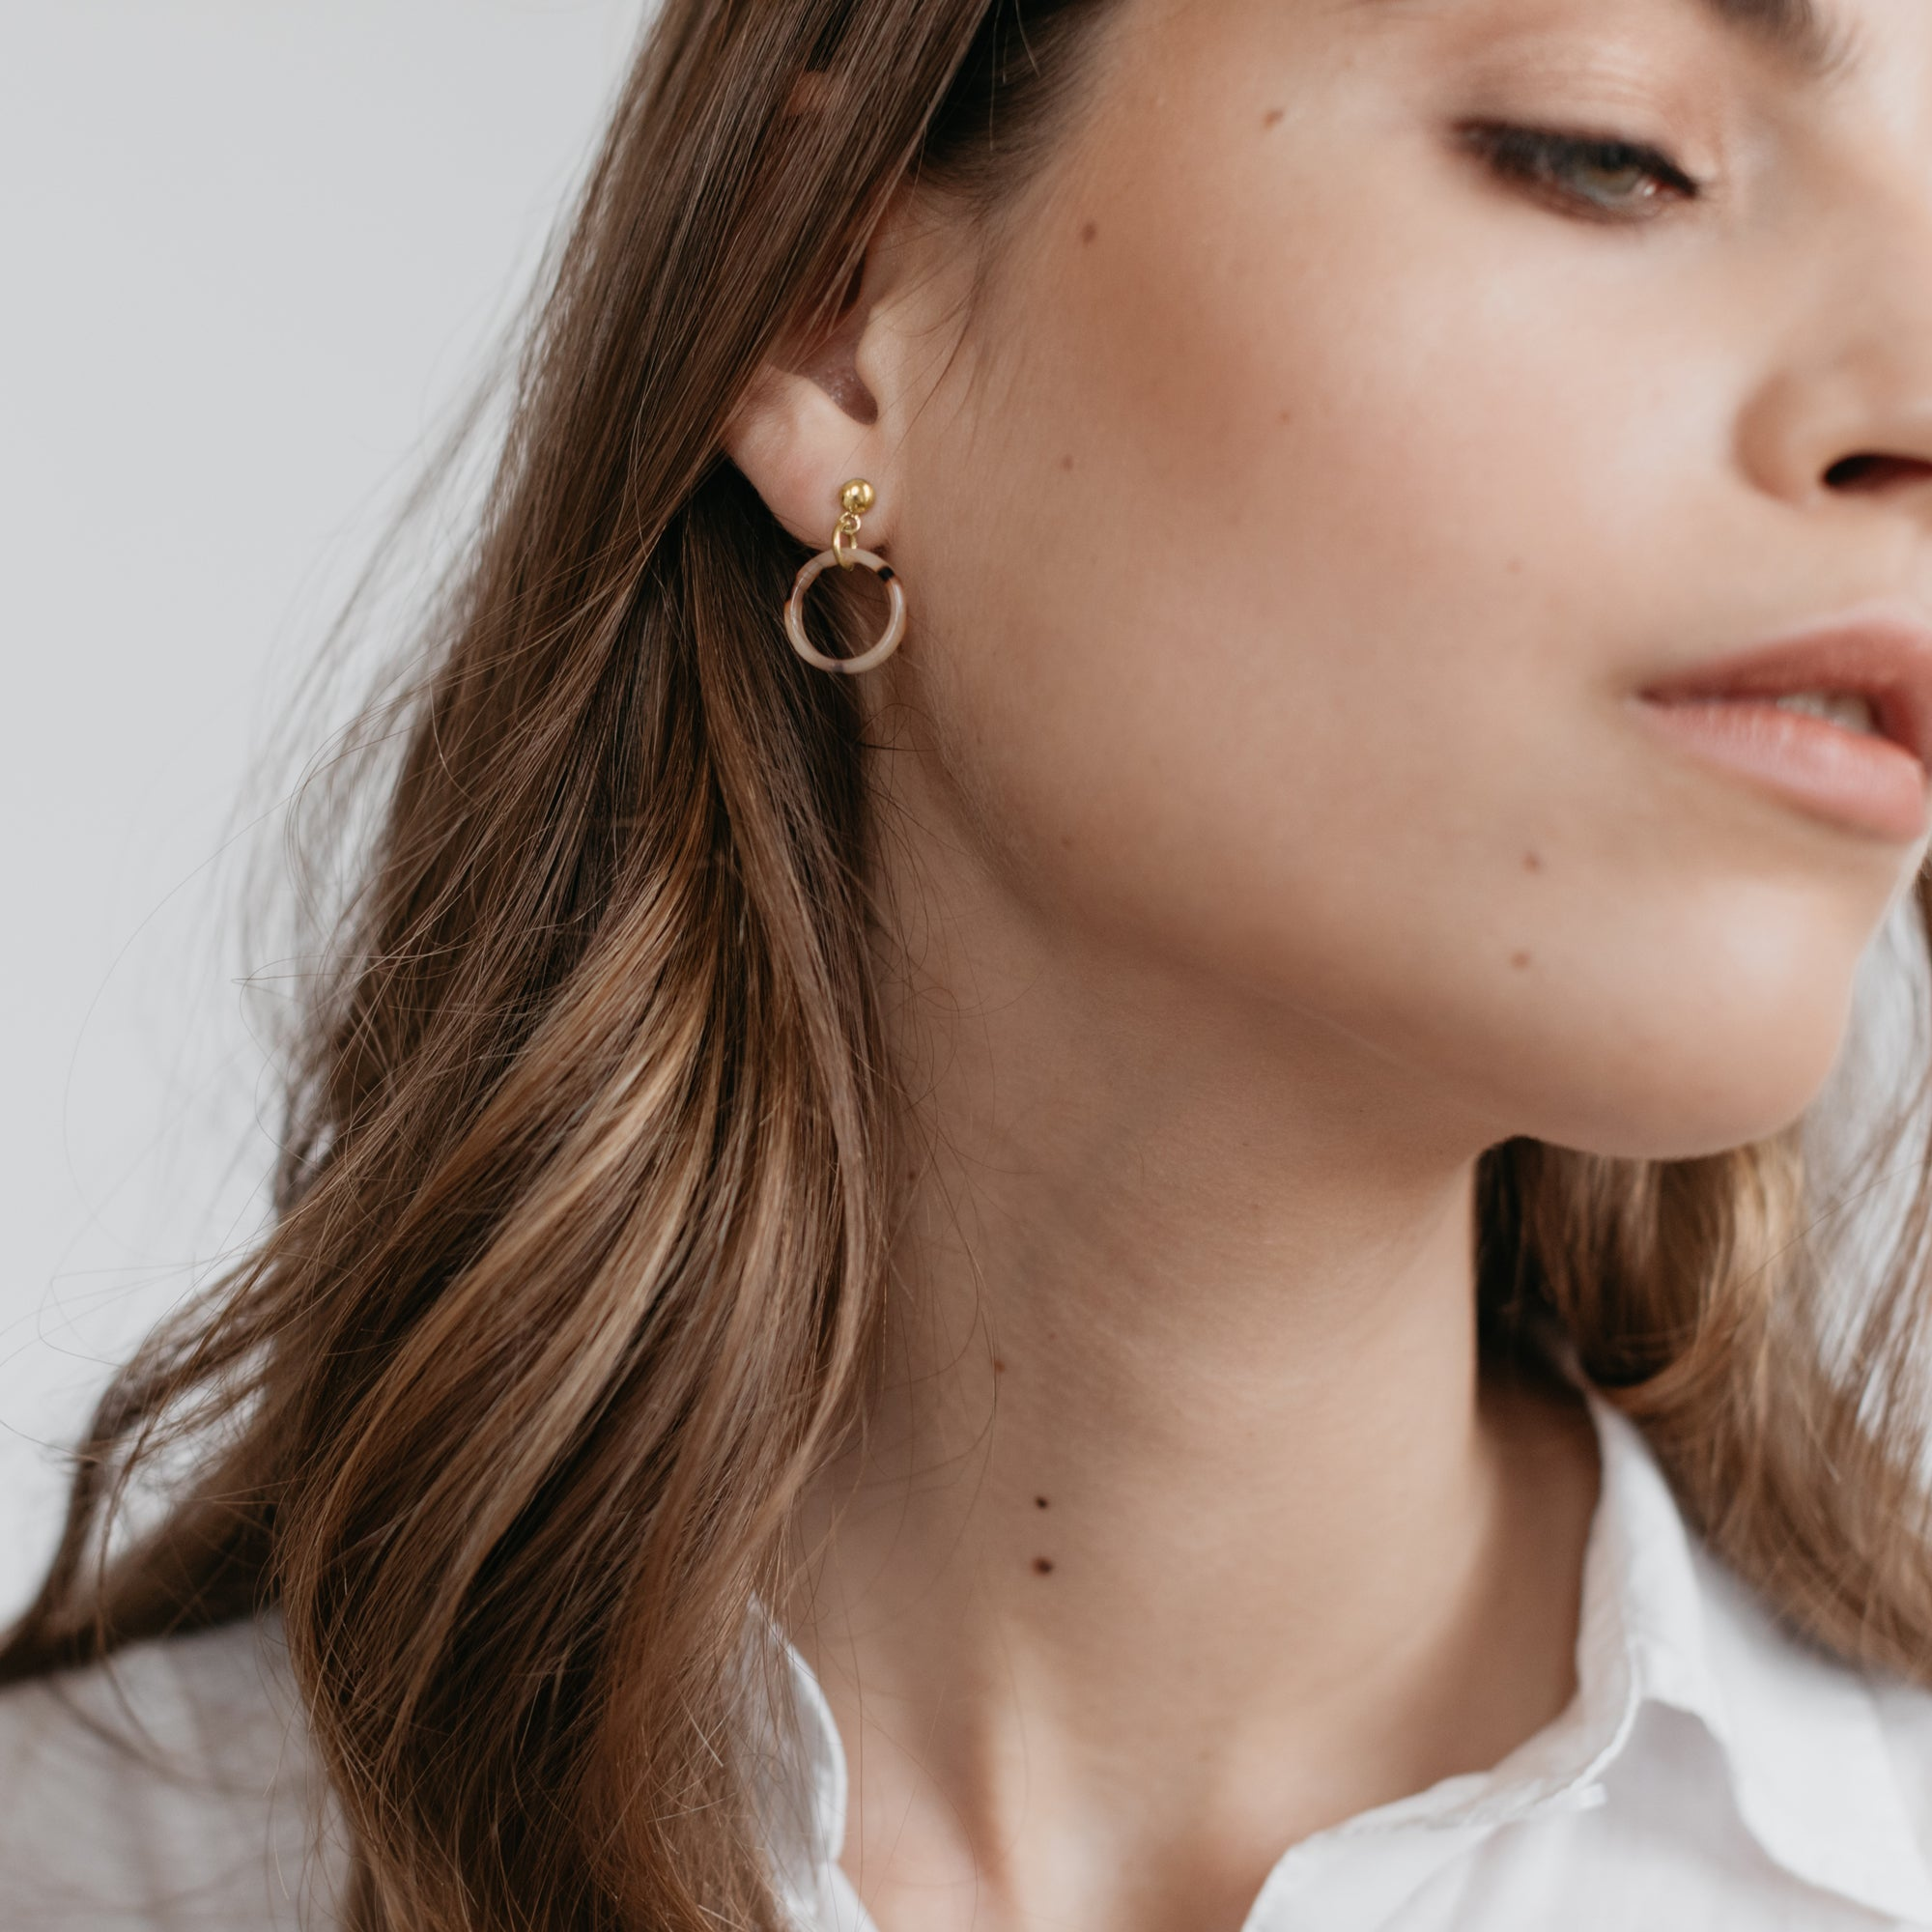 Sophie -  Little Tort Hoops - Light / Gold - Paper Plane - SOPHIE Store - NZ Stockist - Jewellery